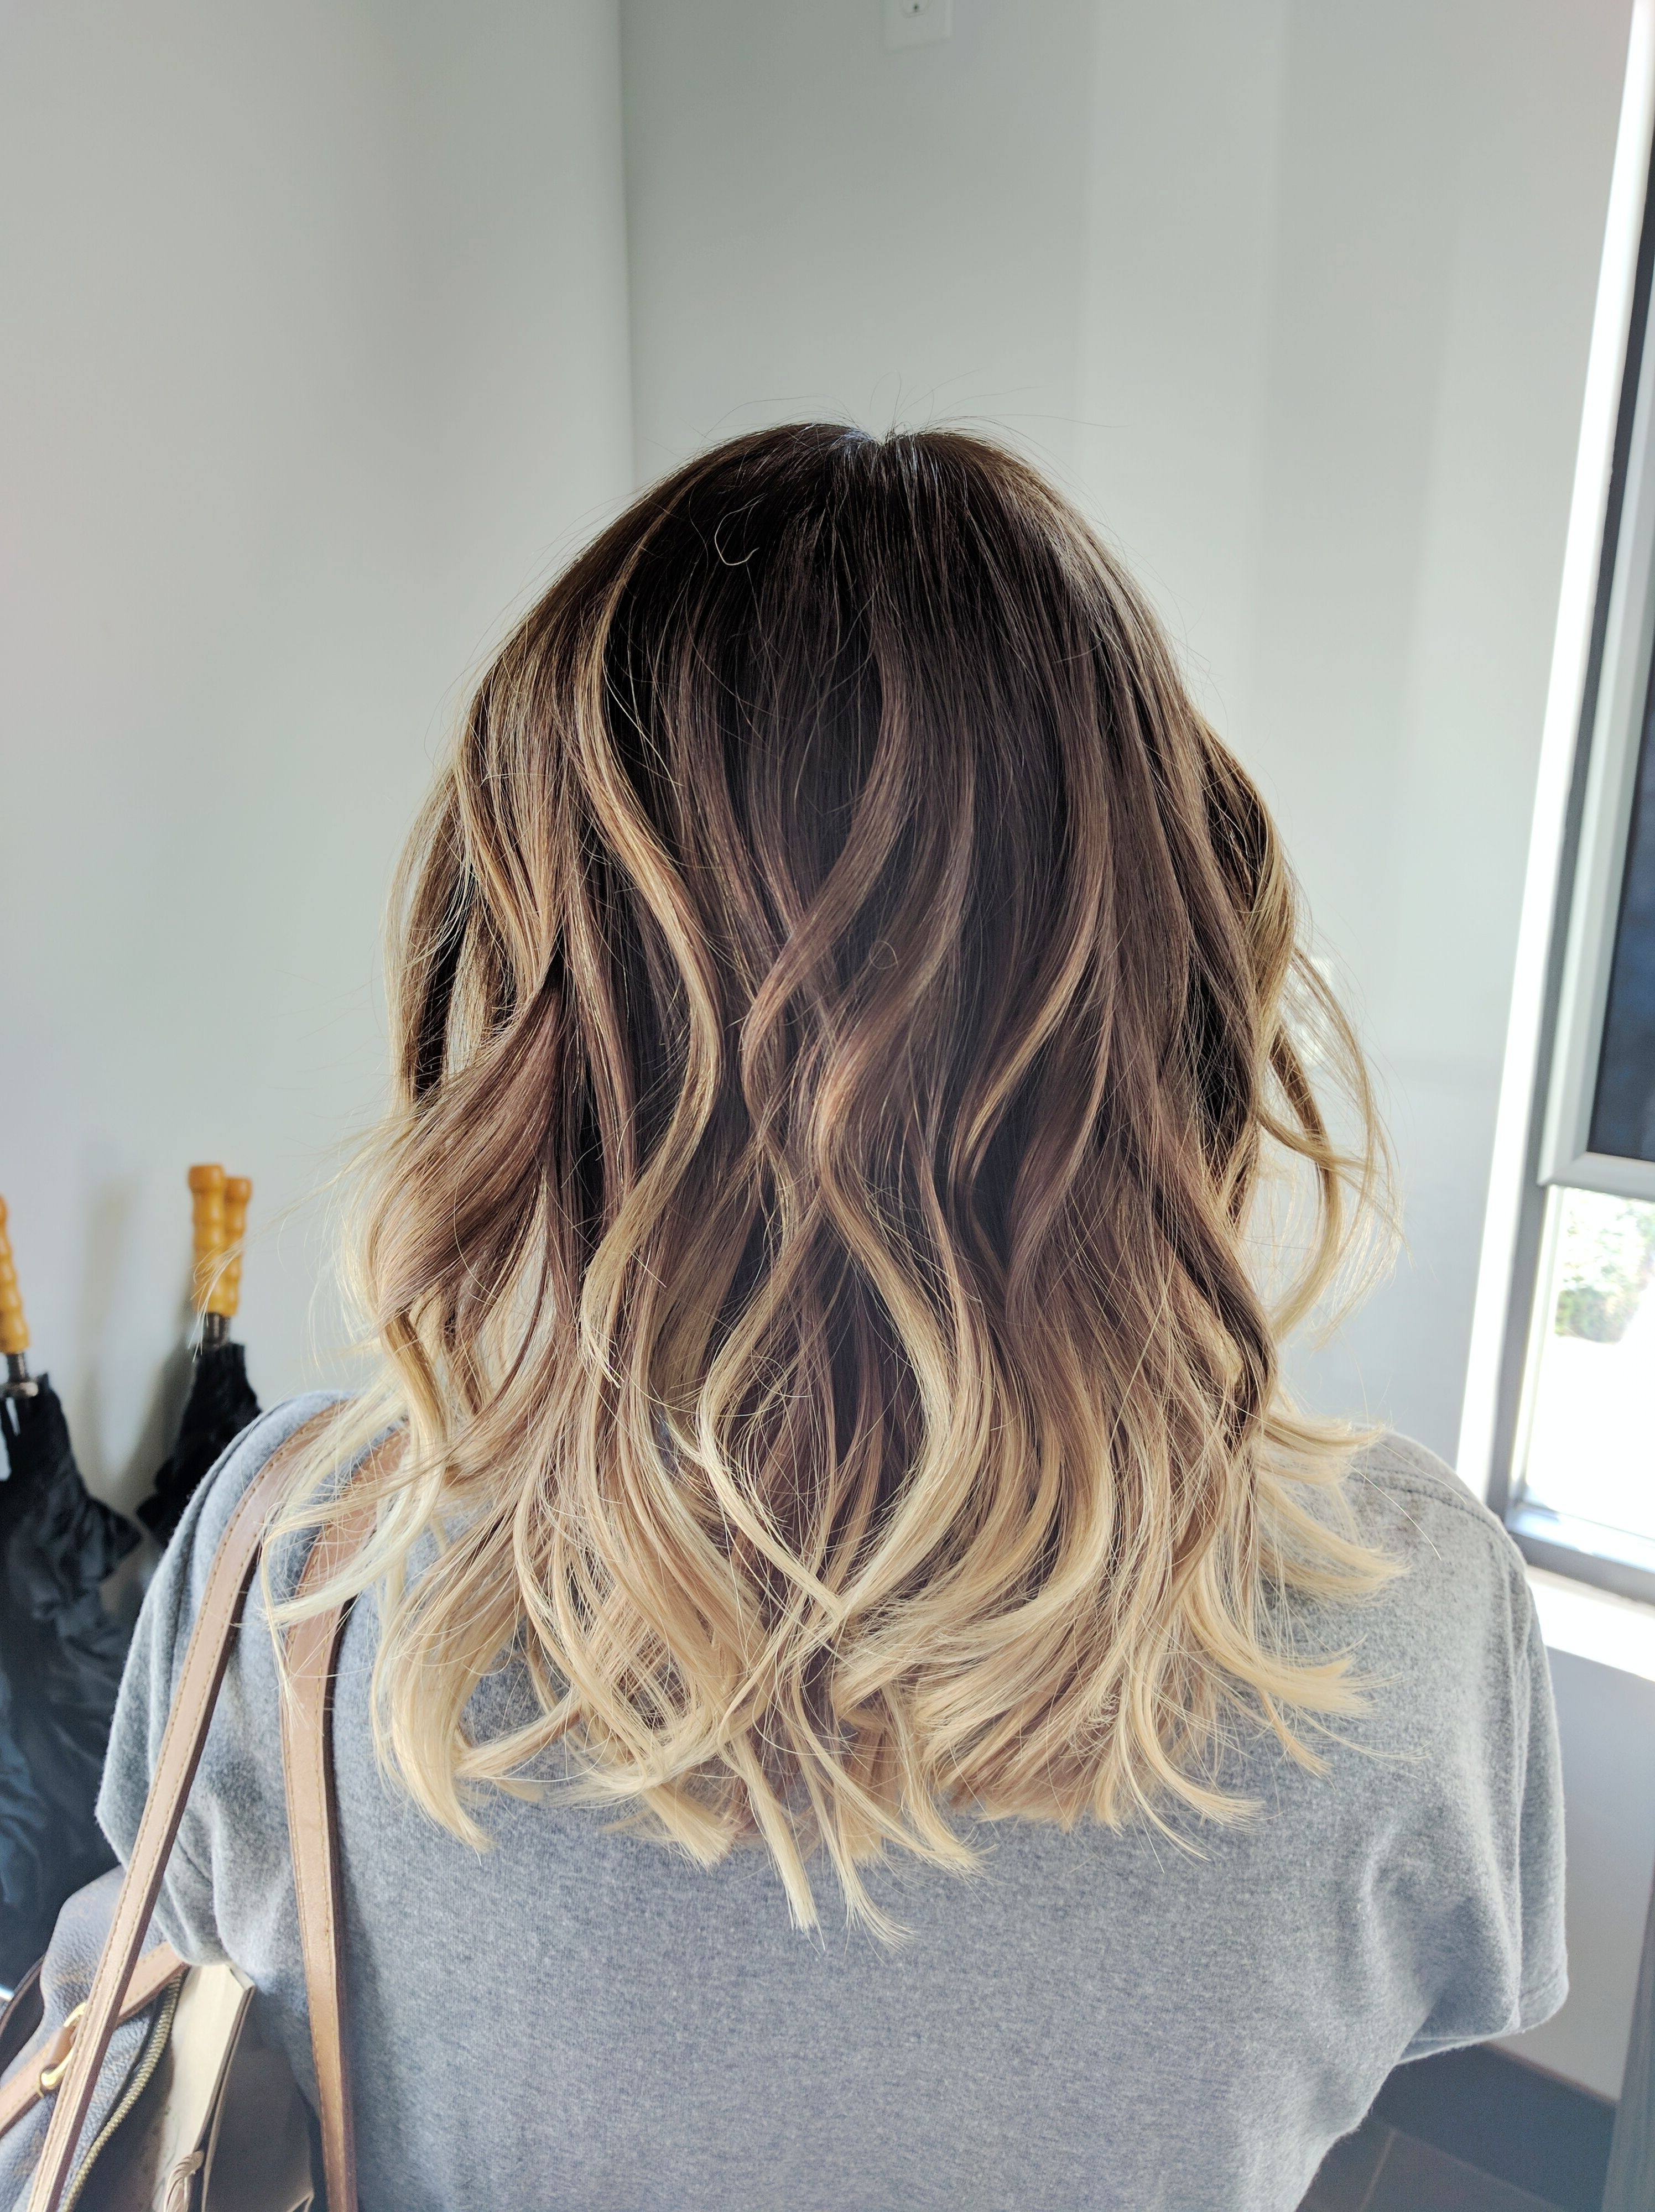 20 Ideas of Long Bob Blonde Hairstyles With Babylights